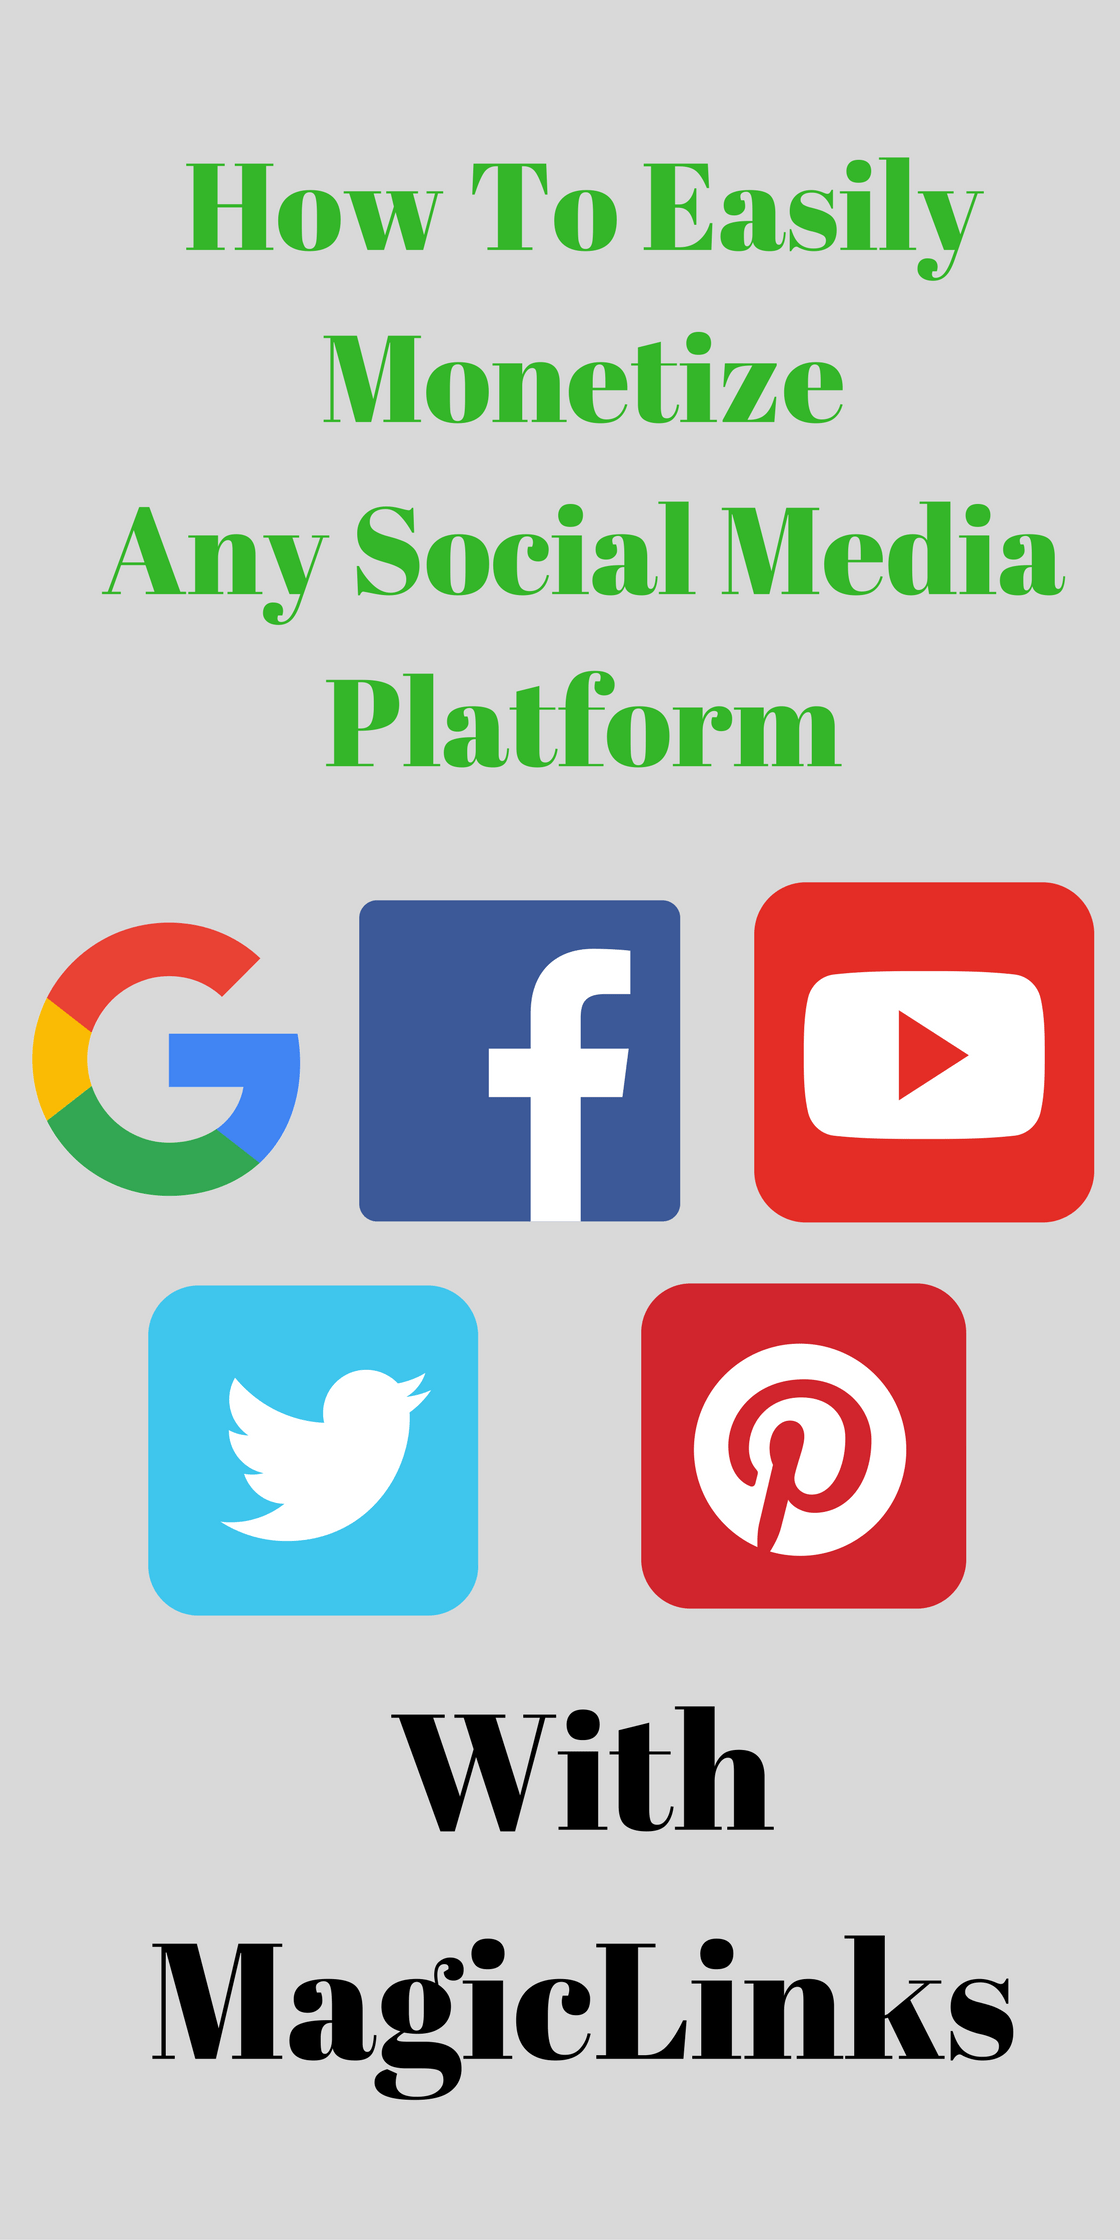 how-to-easily-monetize-any-social-mediaplatform